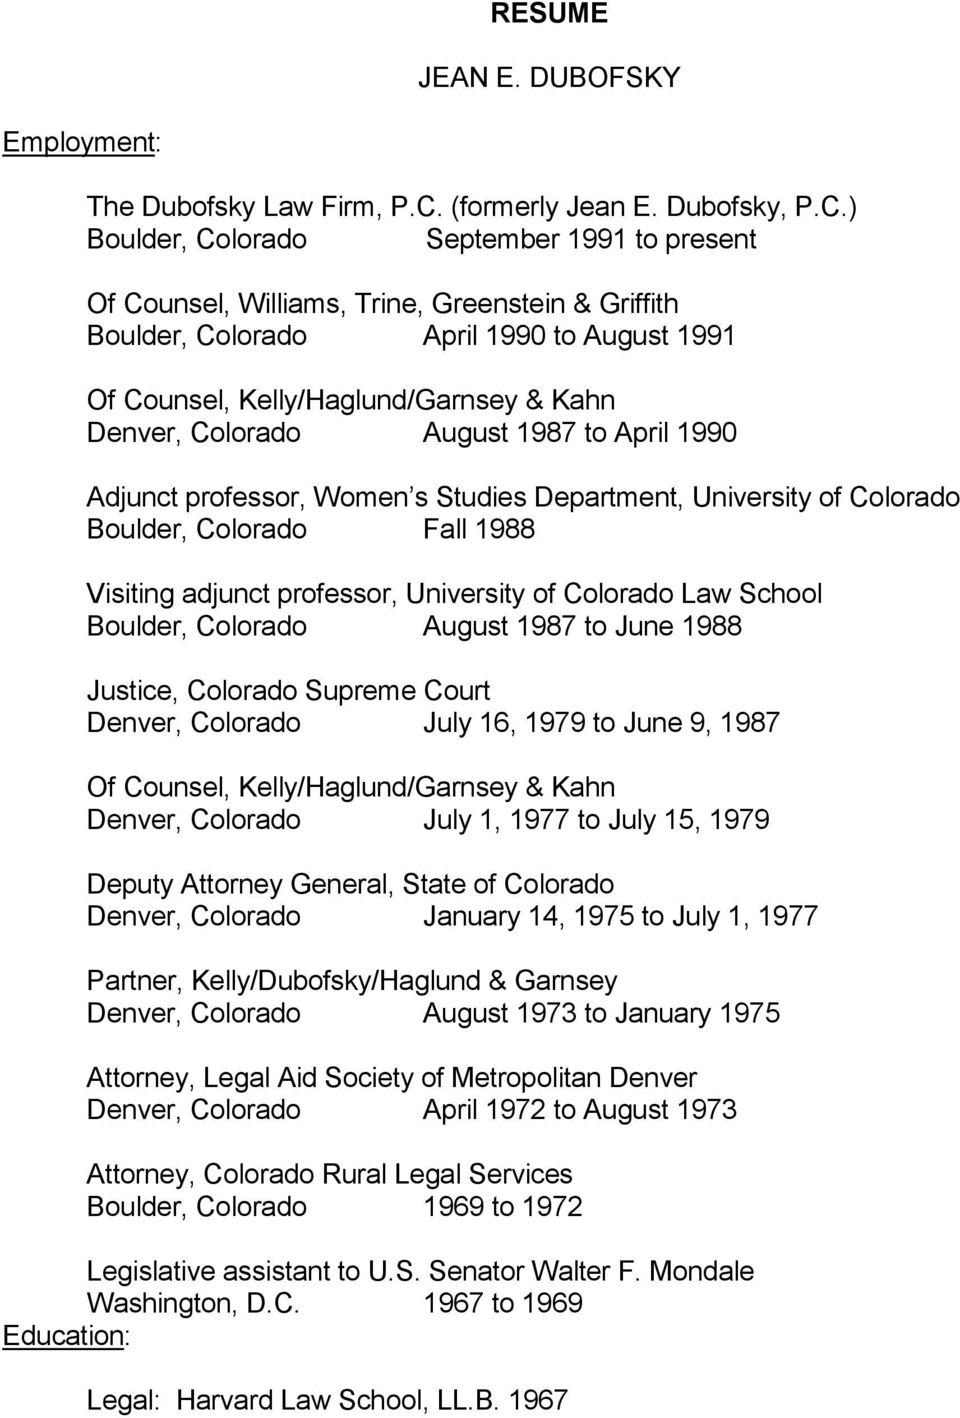 ) Boulder, Colorado September 1991 to present Of Counsel, Williams, Trine, Greenstein & Griffith Boulder, Colorado April 1990 to August 1991 Of Counsel, Kelly/Haglund/Garnsey & Kahn Denver, Colorado